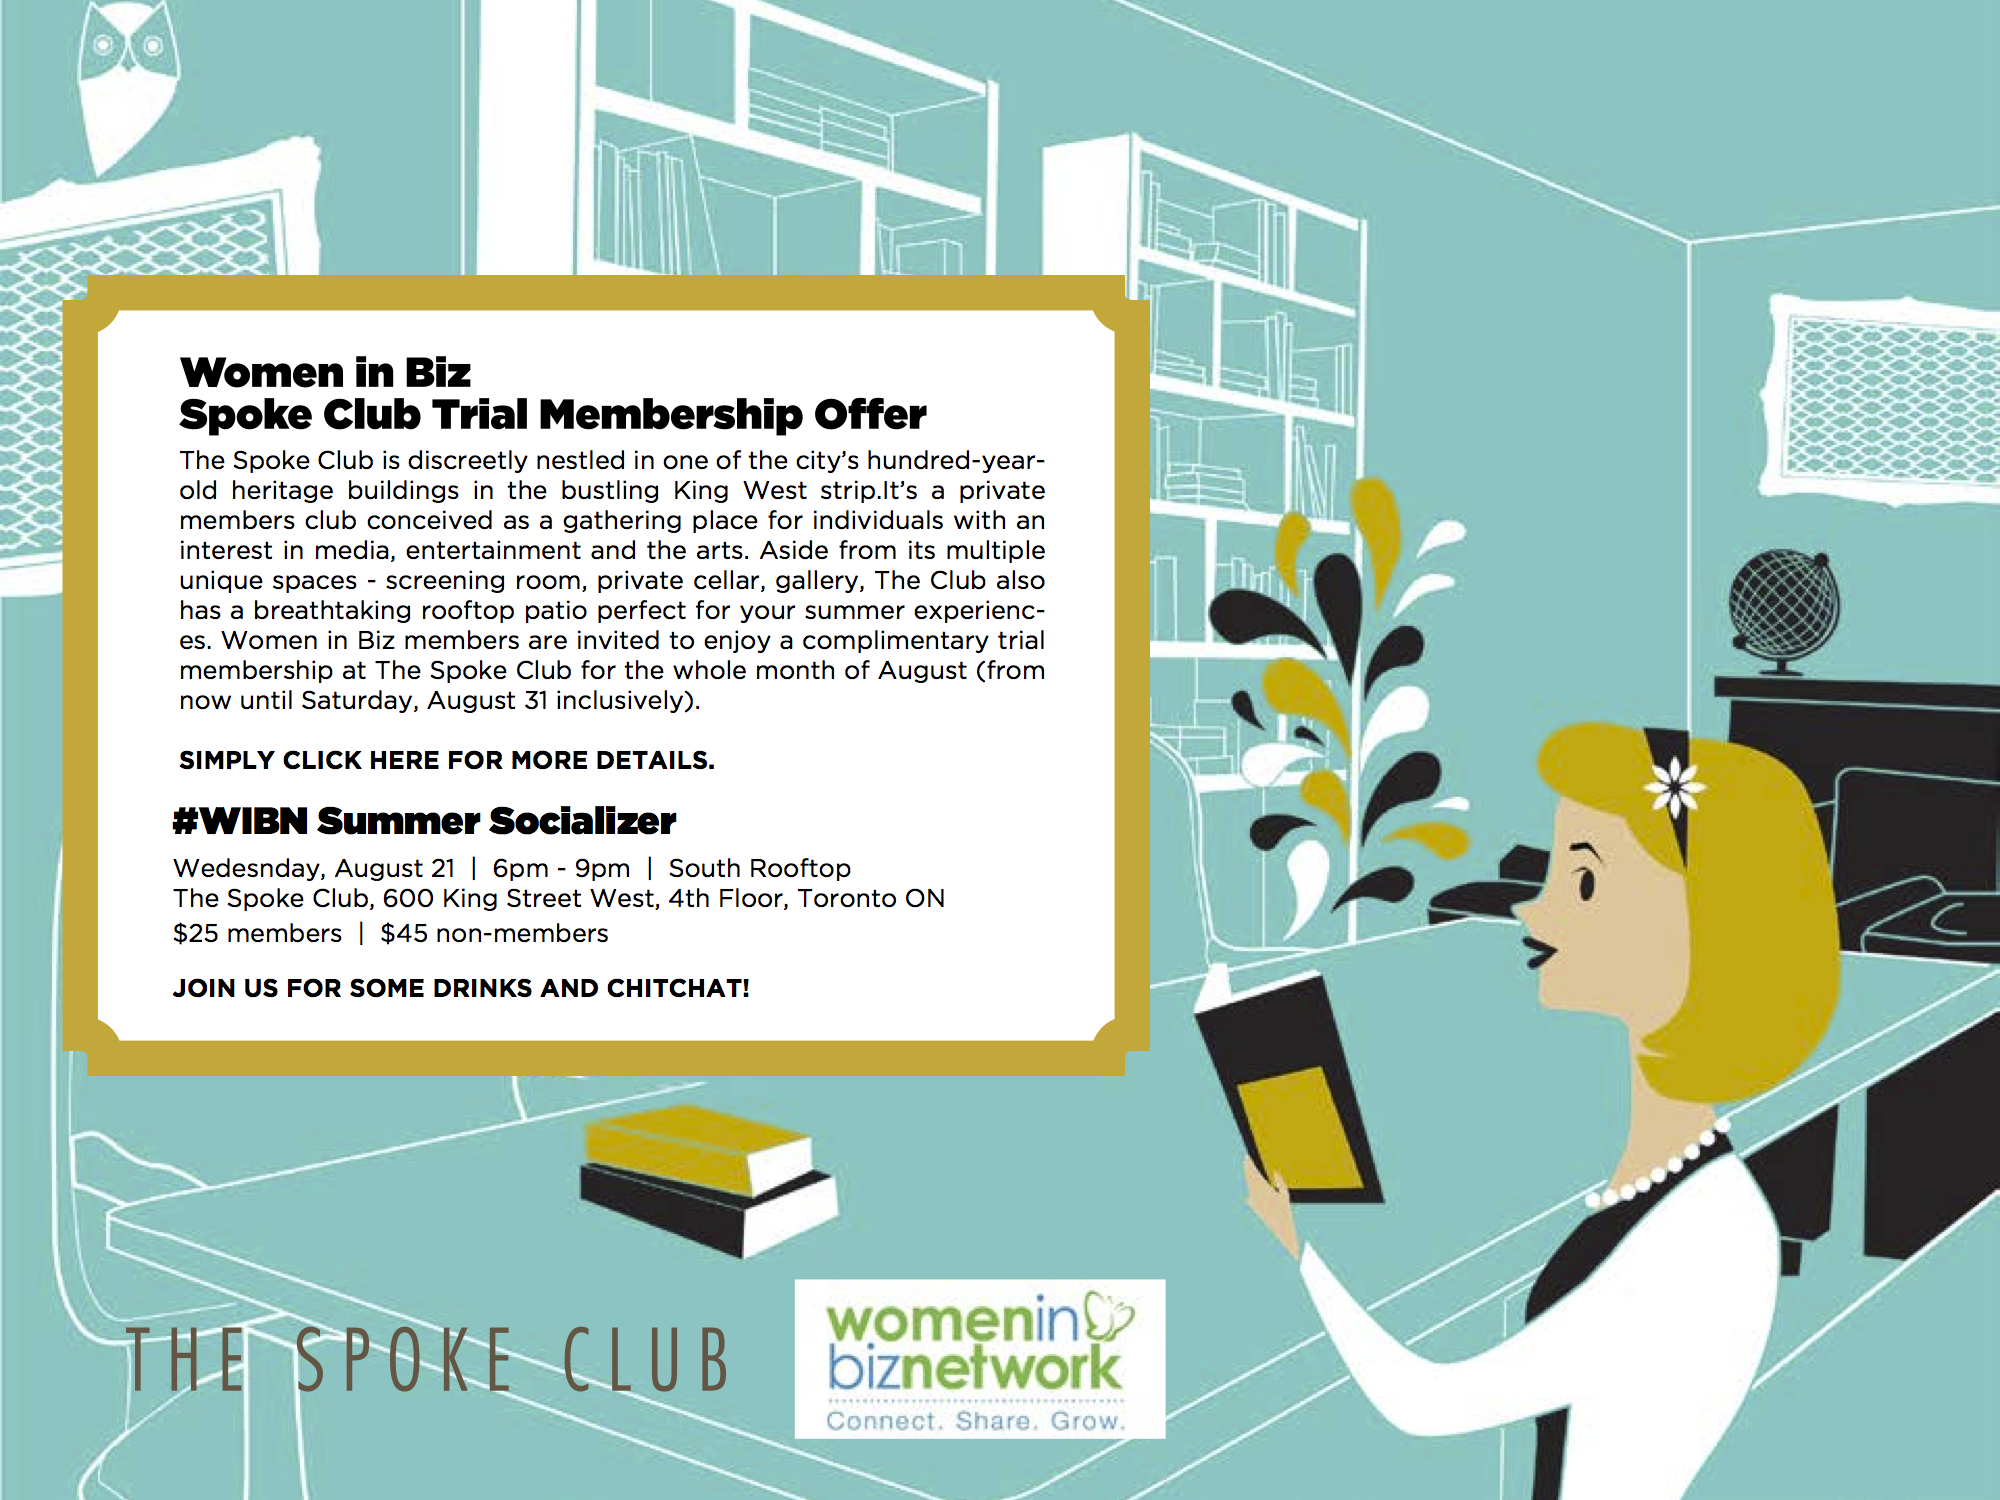 Complimentary Membership at The Spoke Club for all Women in Biz Members